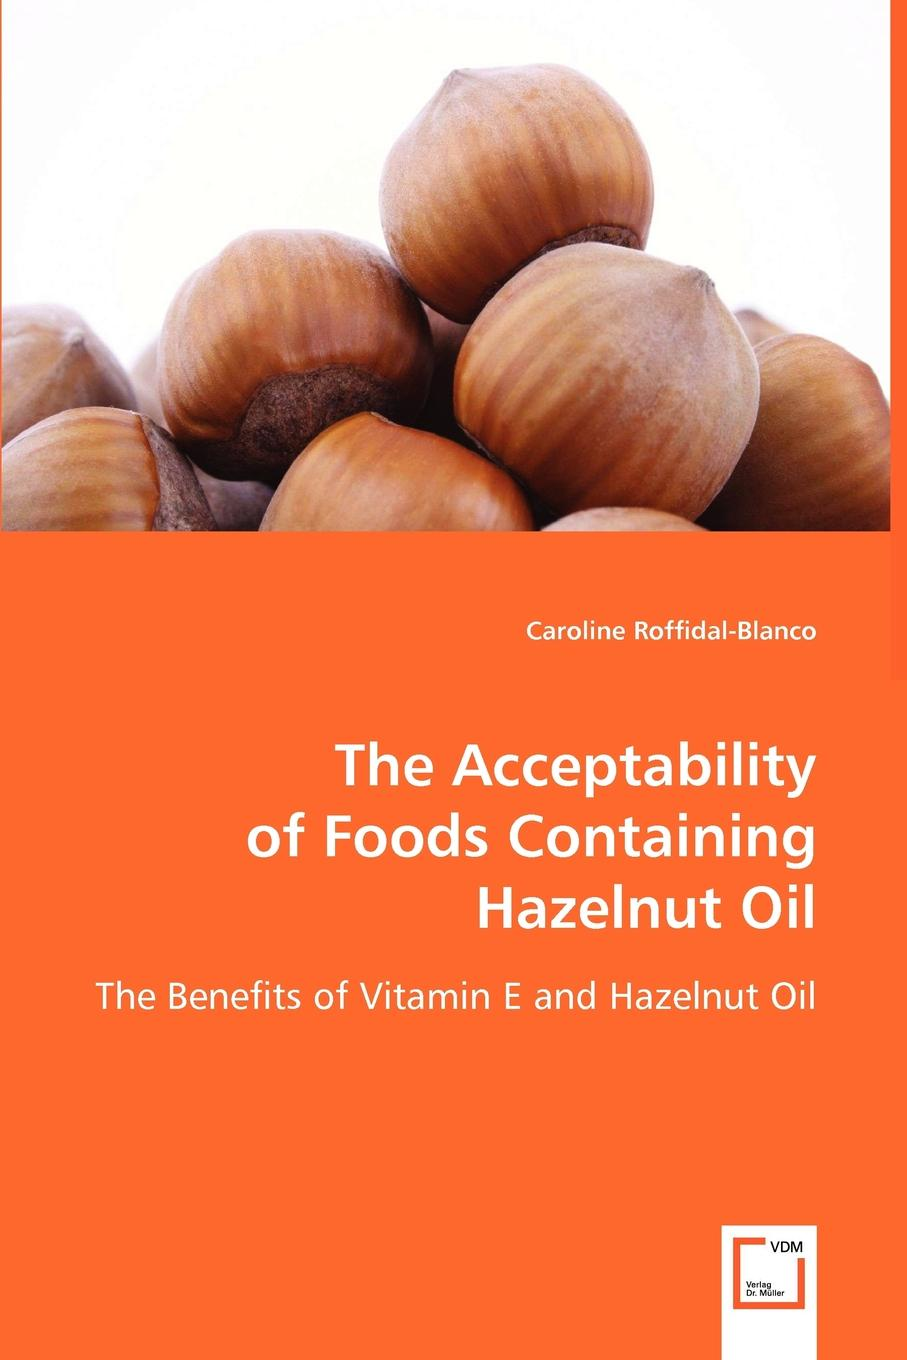 Caroline Roffidal-Blanco The Acceptability of Foods Containing Hazelnut Oil